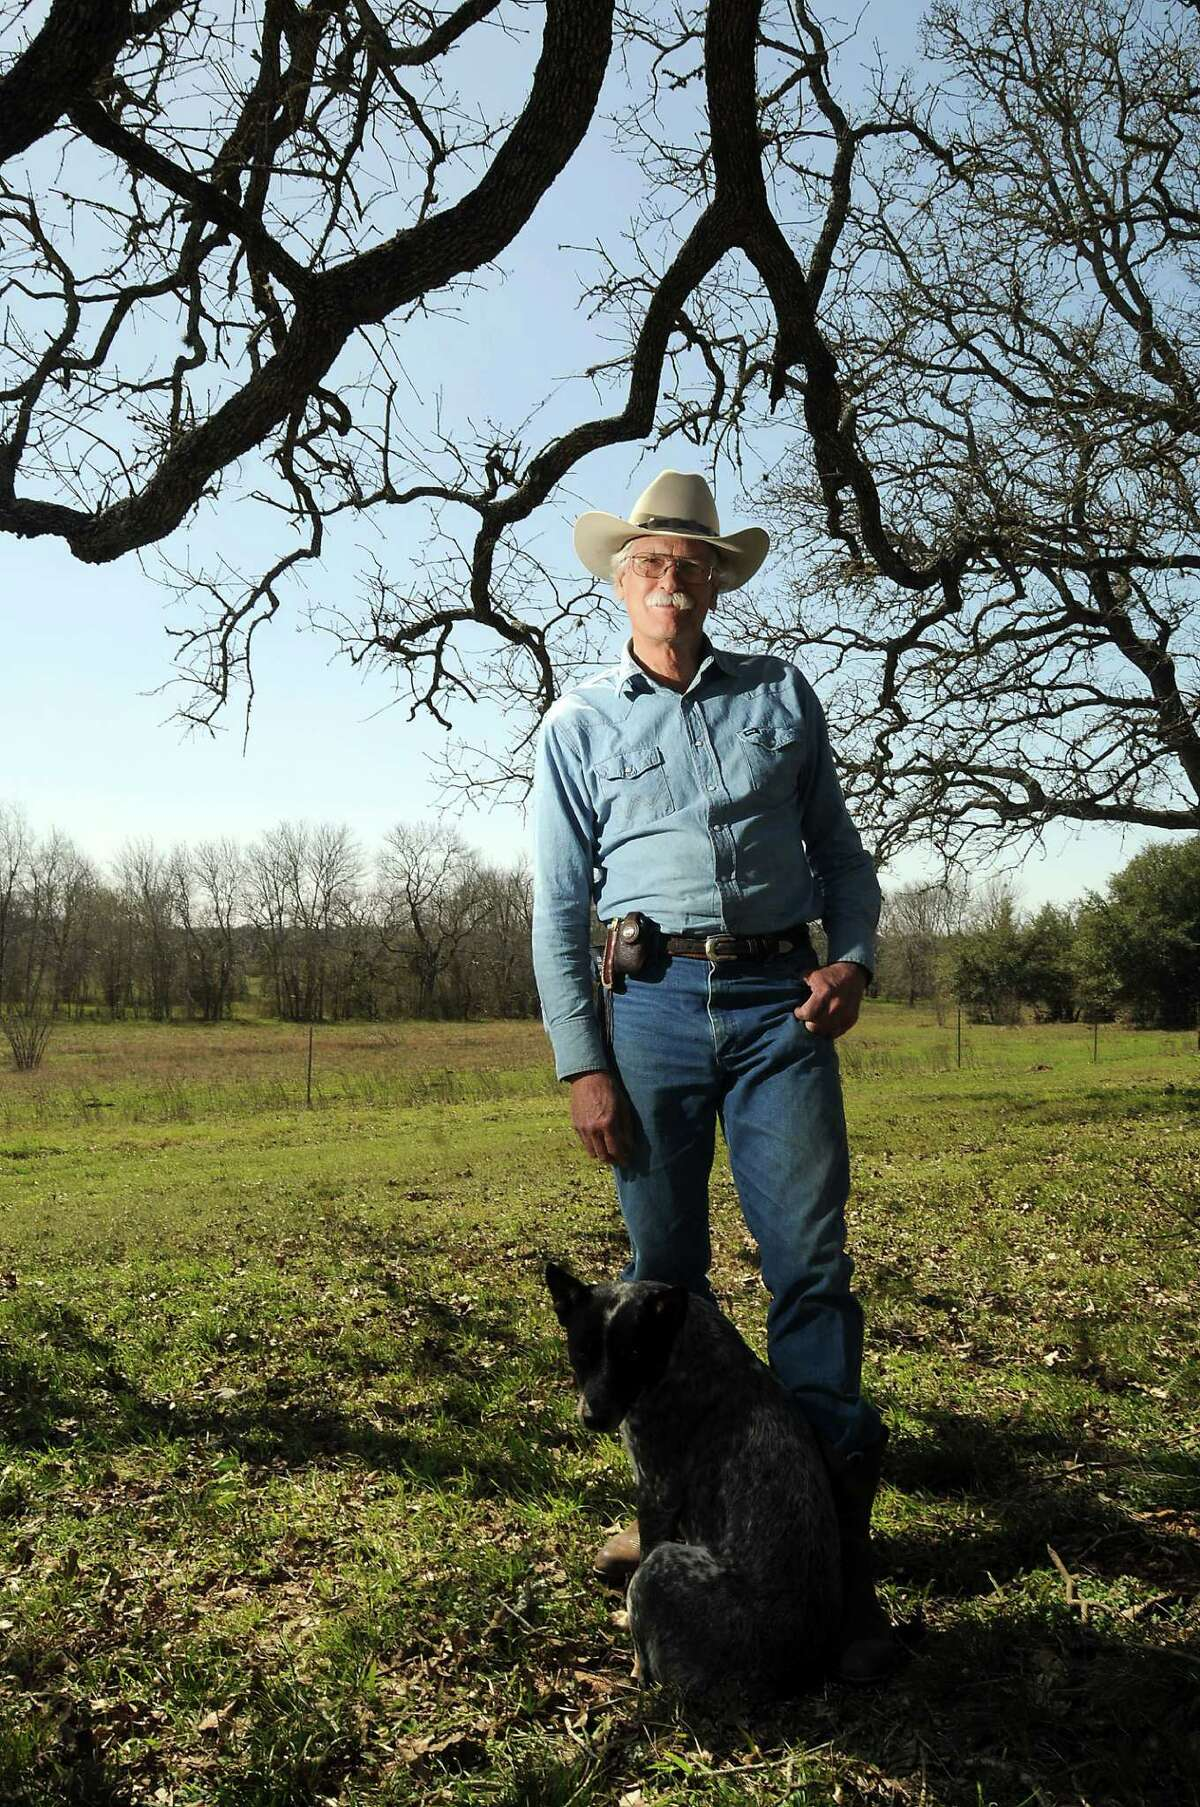 Jim Kearney, a scholar and rancher who lives in Weimar, will be teaching a course in European immigration into Texas at the University of Texas this fall.